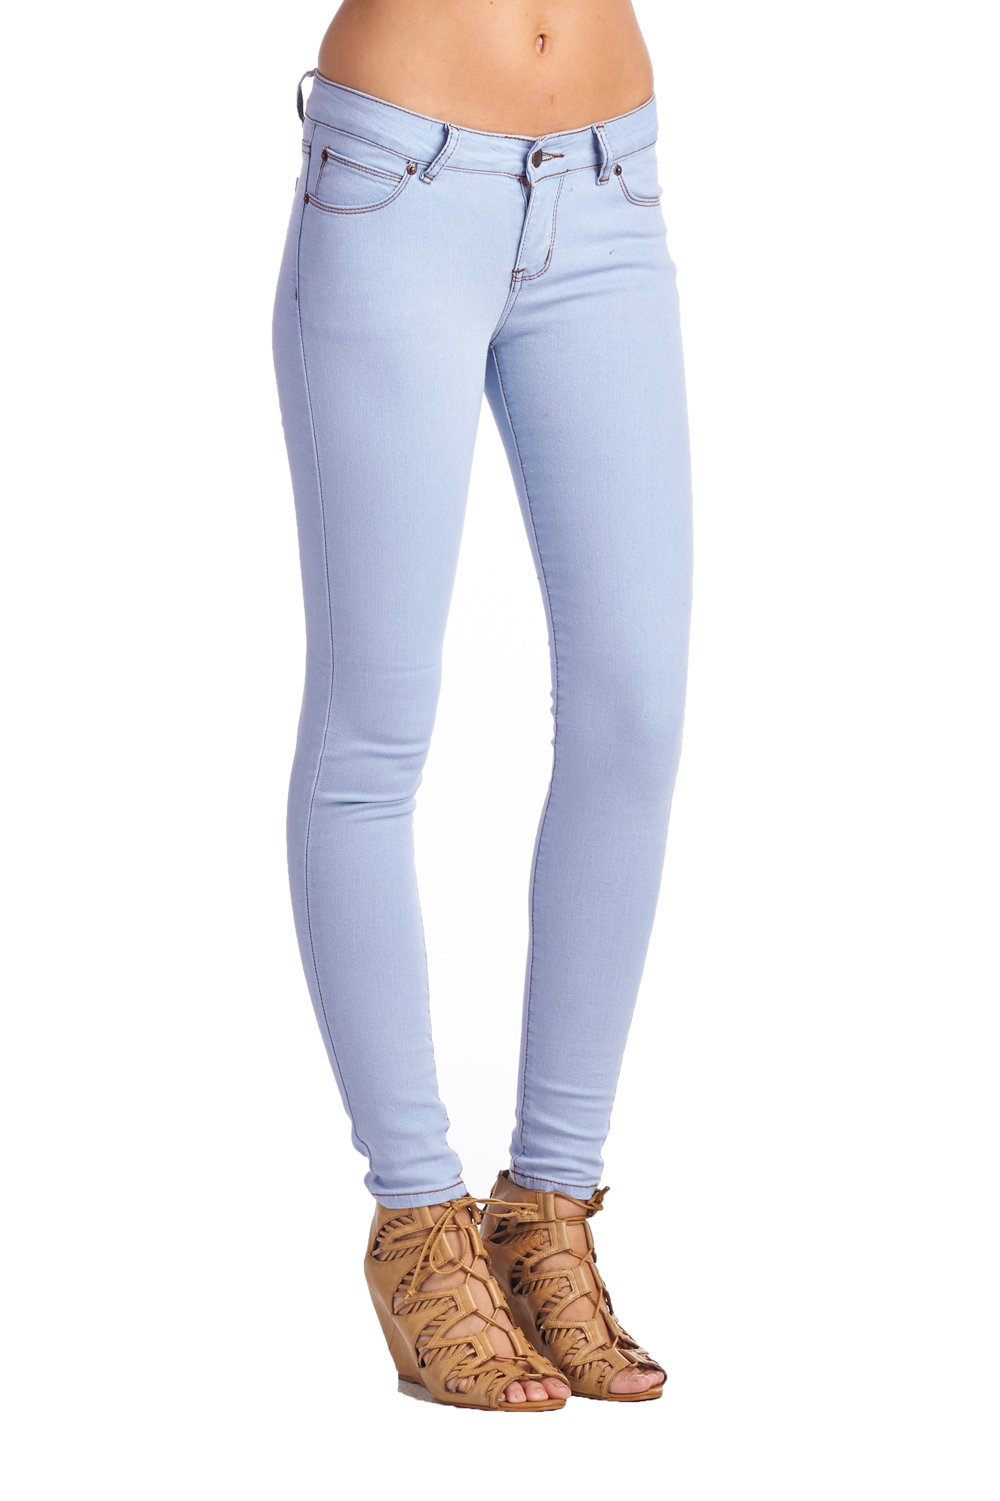 Blue Age Womens Perfect Fit Stretch Cotton Skinny Jeans(P9718L_LTBLUE_9)